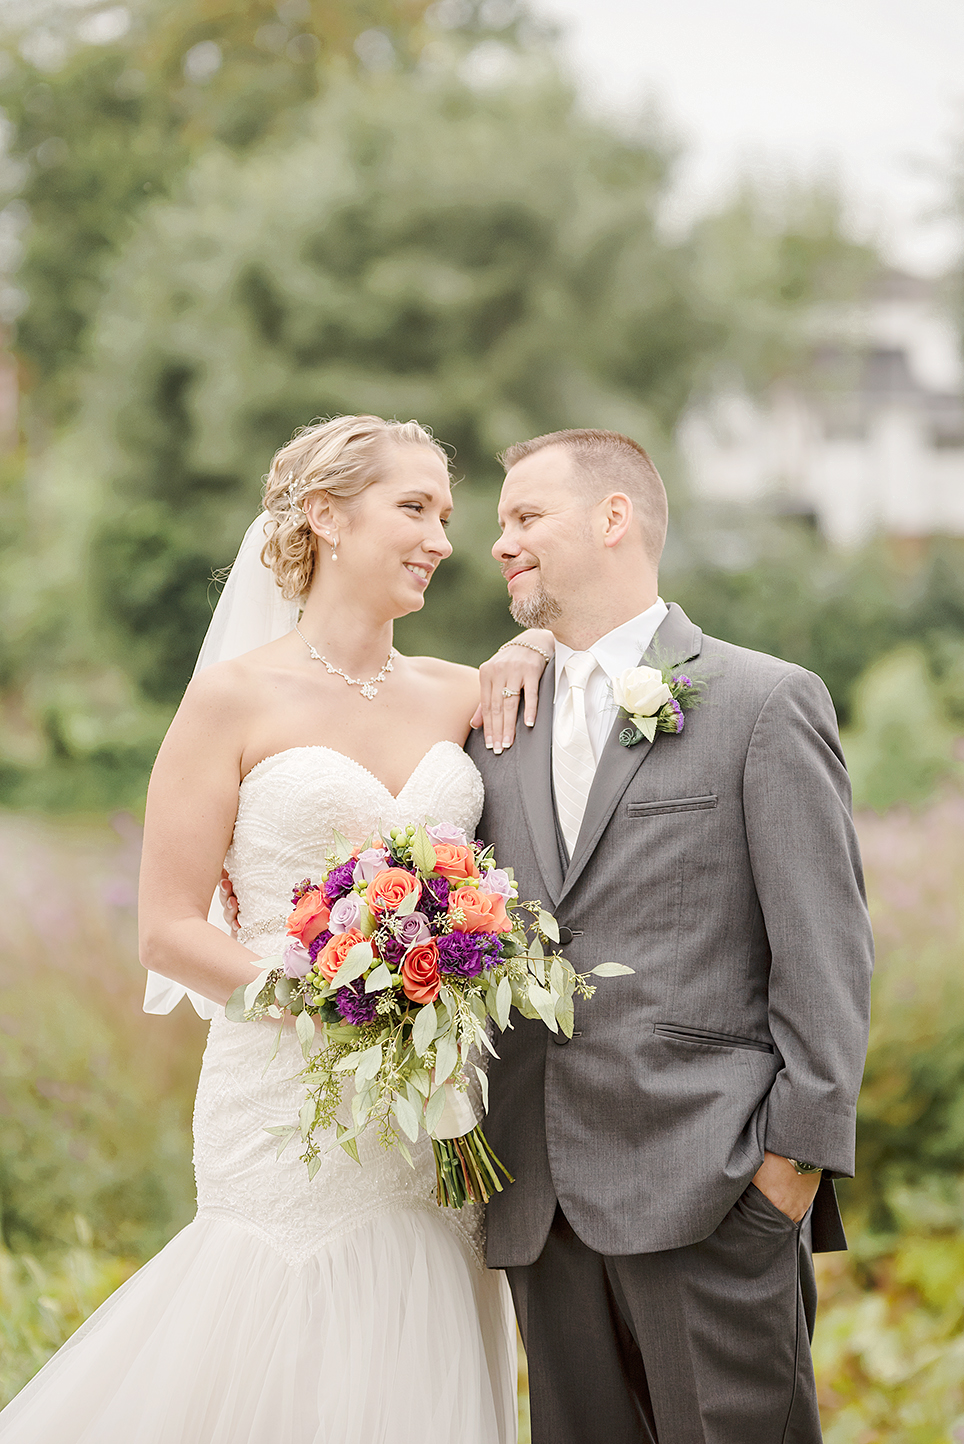 LINDSAY-ADKINS-PHOTOGRAPHY-MICHIGAN-WEDDING-PHOTOGRAPHER-THE-OLD-MILL-DUNDEE